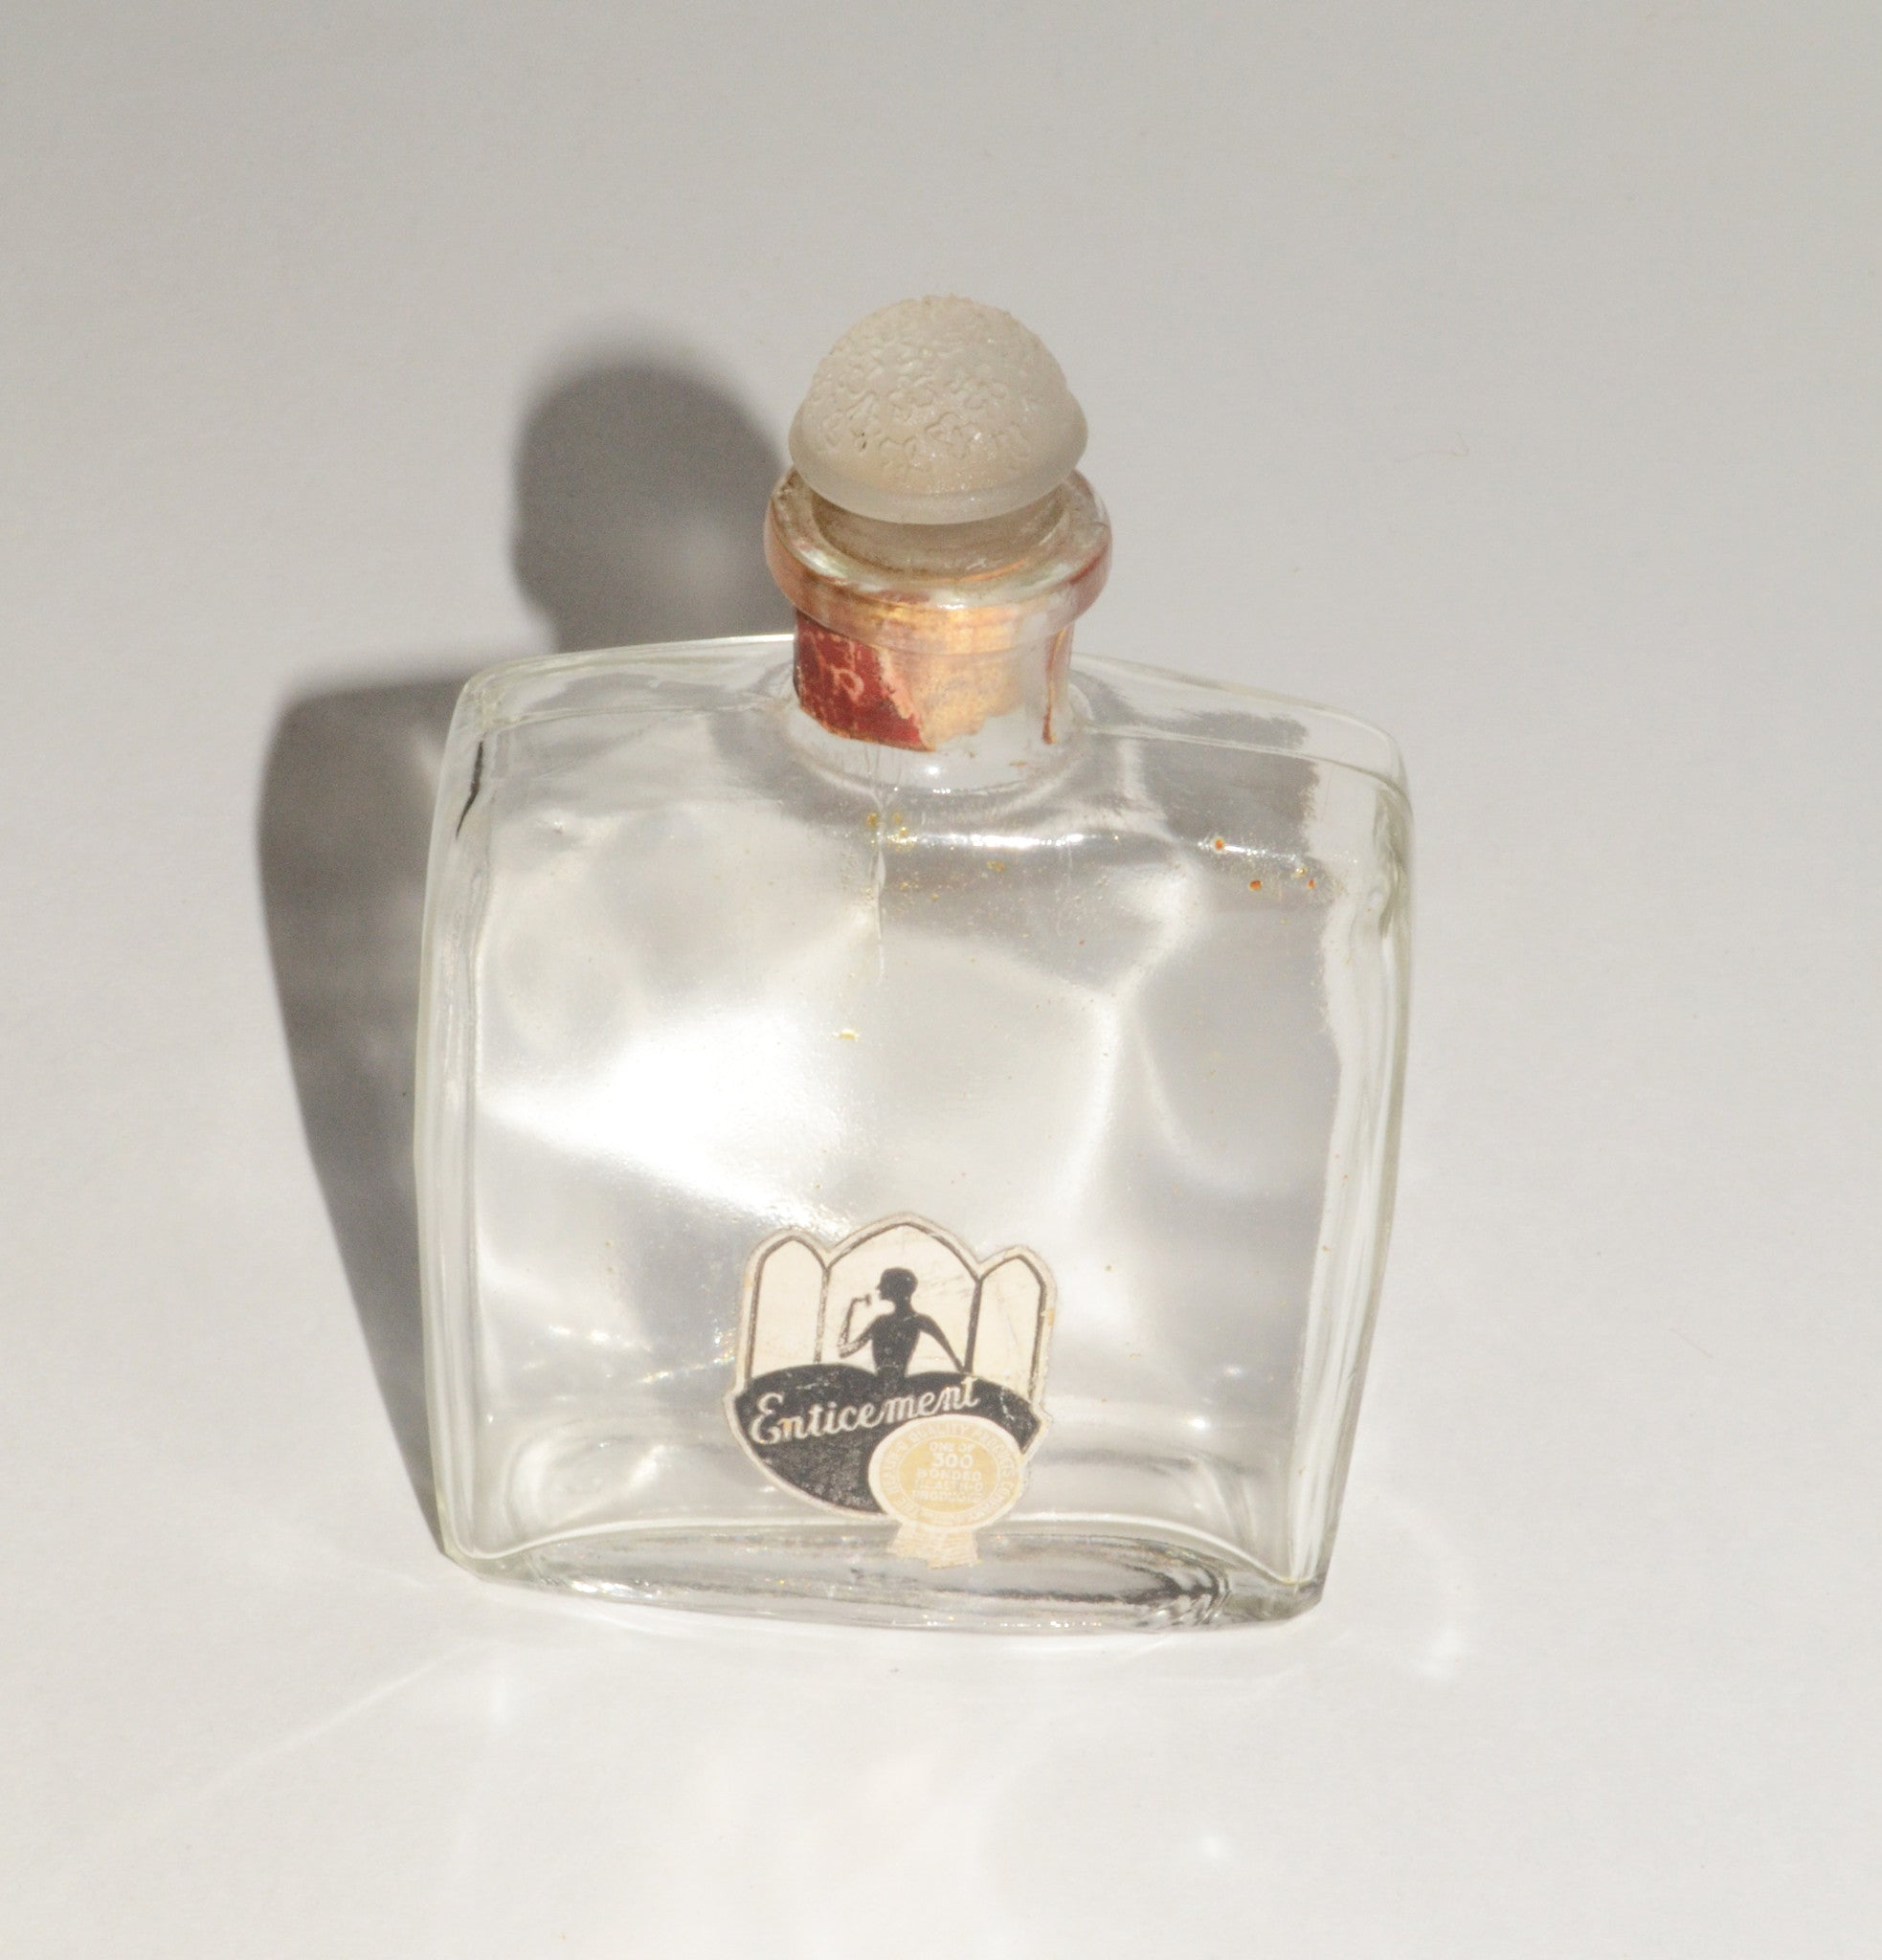 Vintage Enticement Perfume Bottle